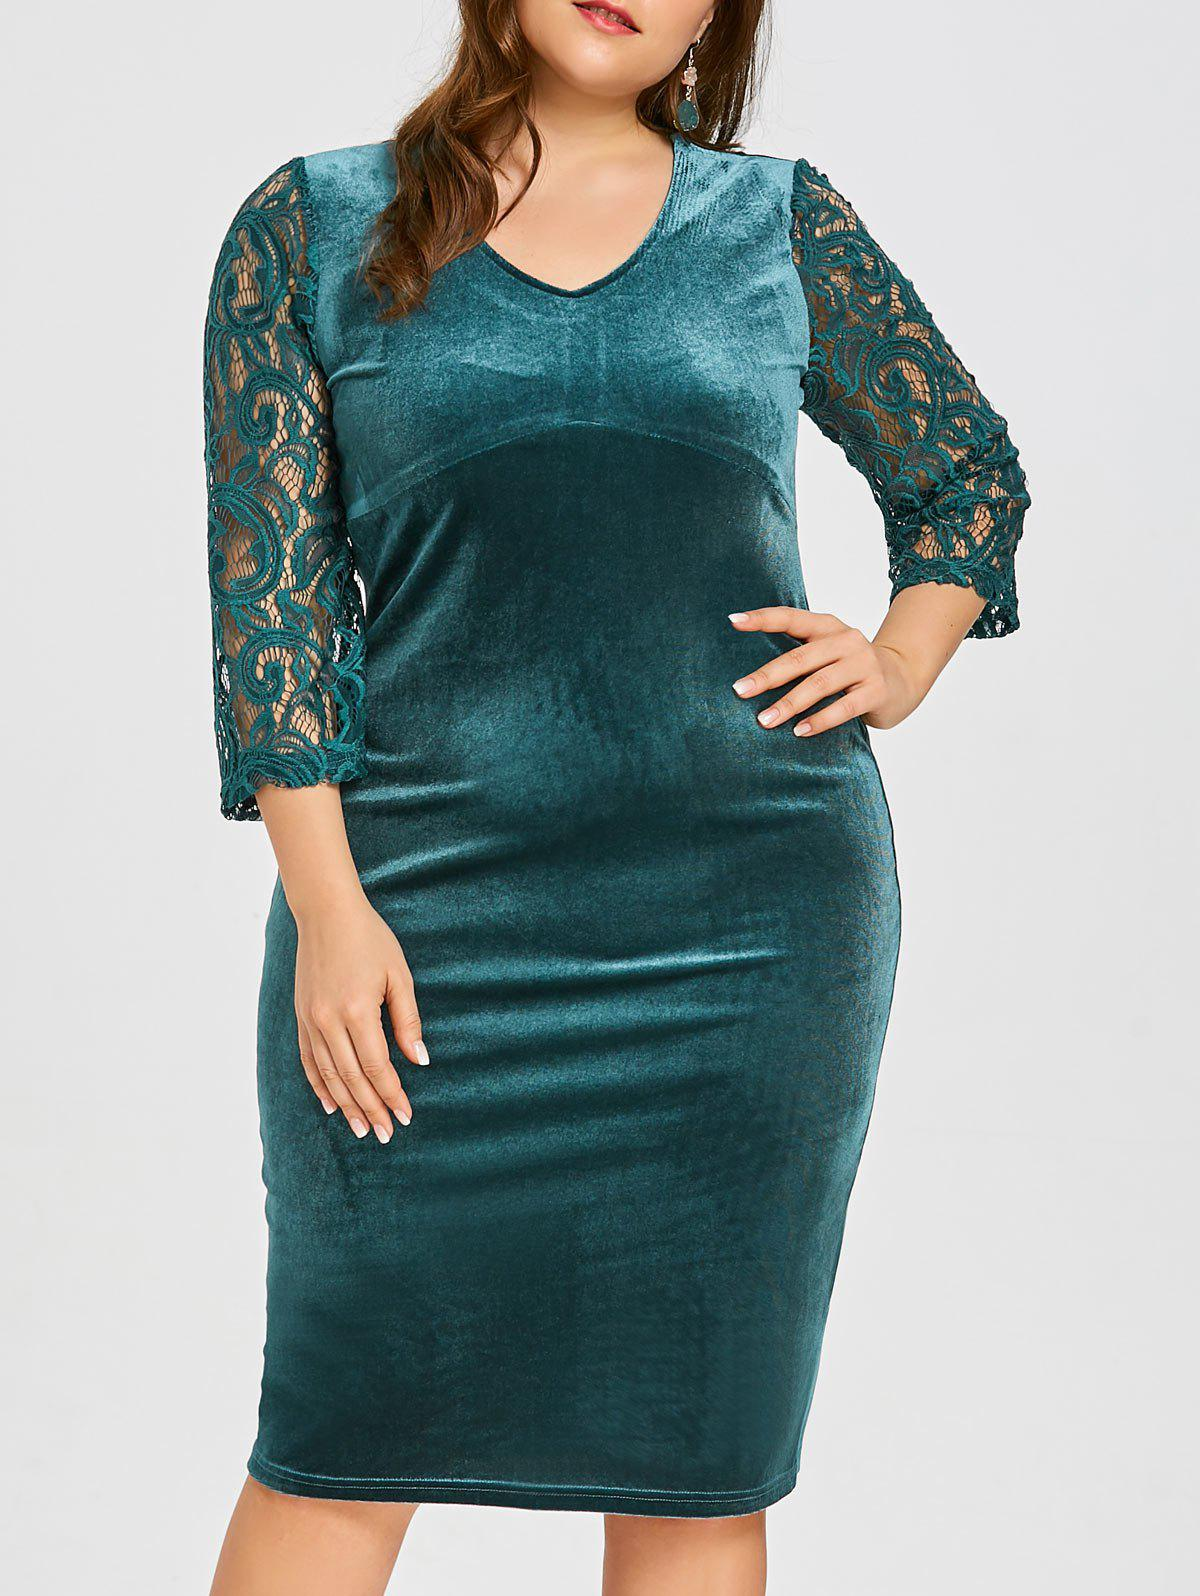 27a54af85bc7 Fashion Plus Size Floral Lace Velvet Bodycon Dress